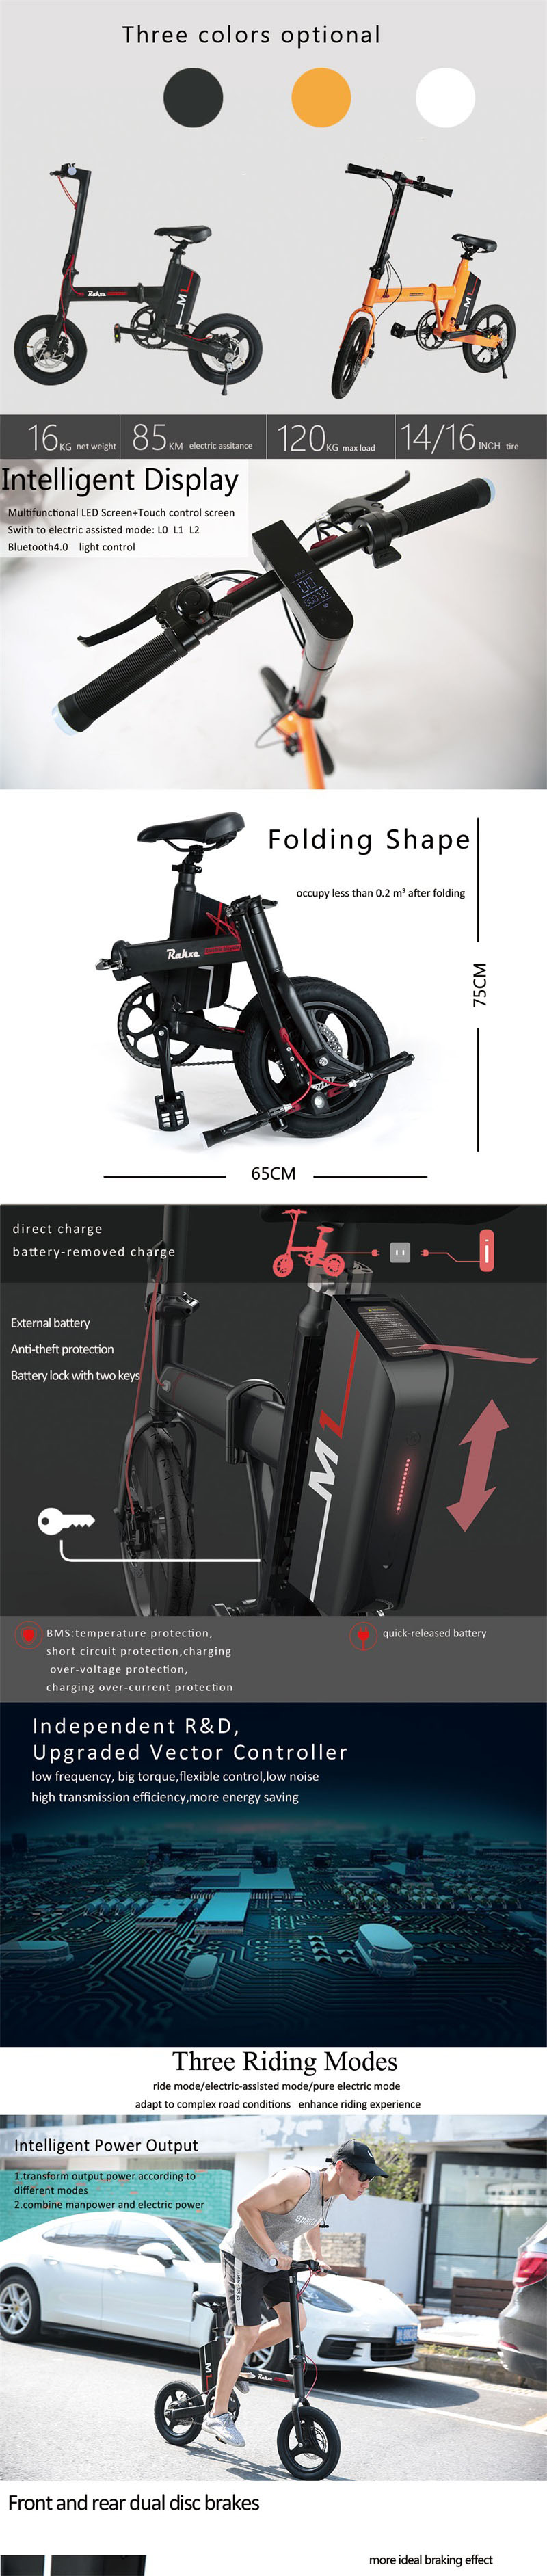 Electric Scooter, Electric Bike, Electric Moped, Electric Bicycle, Electric Motorcycle, Self Balancing Scooters, Electric Vehicle